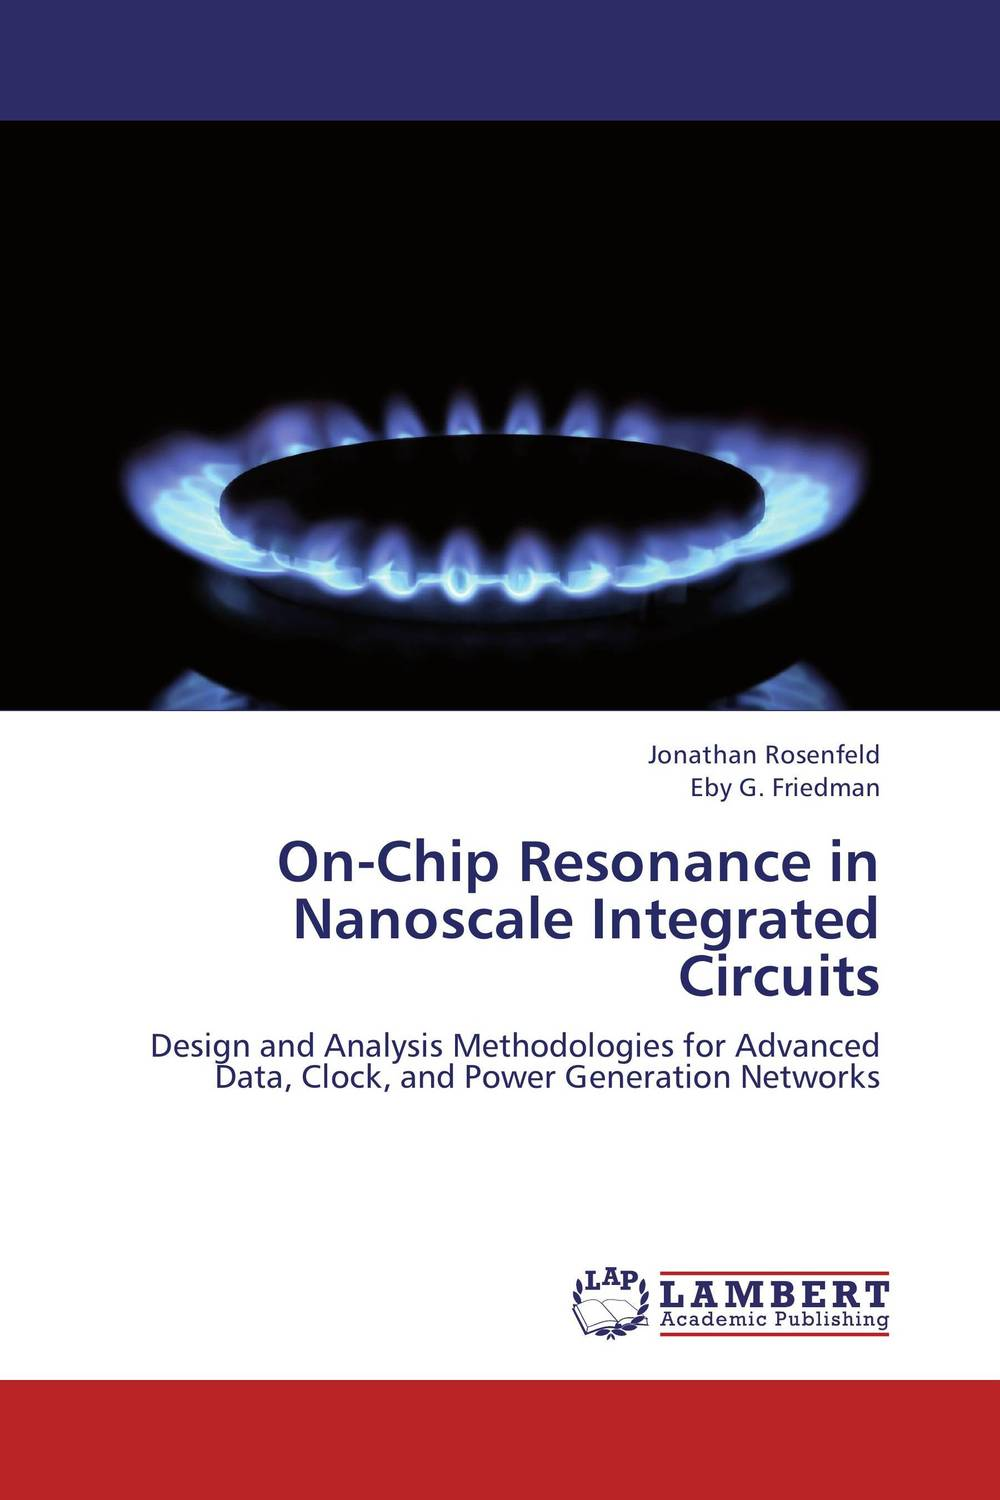 On-Chip Resonance in Nanoscale Integrated Circuits modeling and evaluation of networks on chip